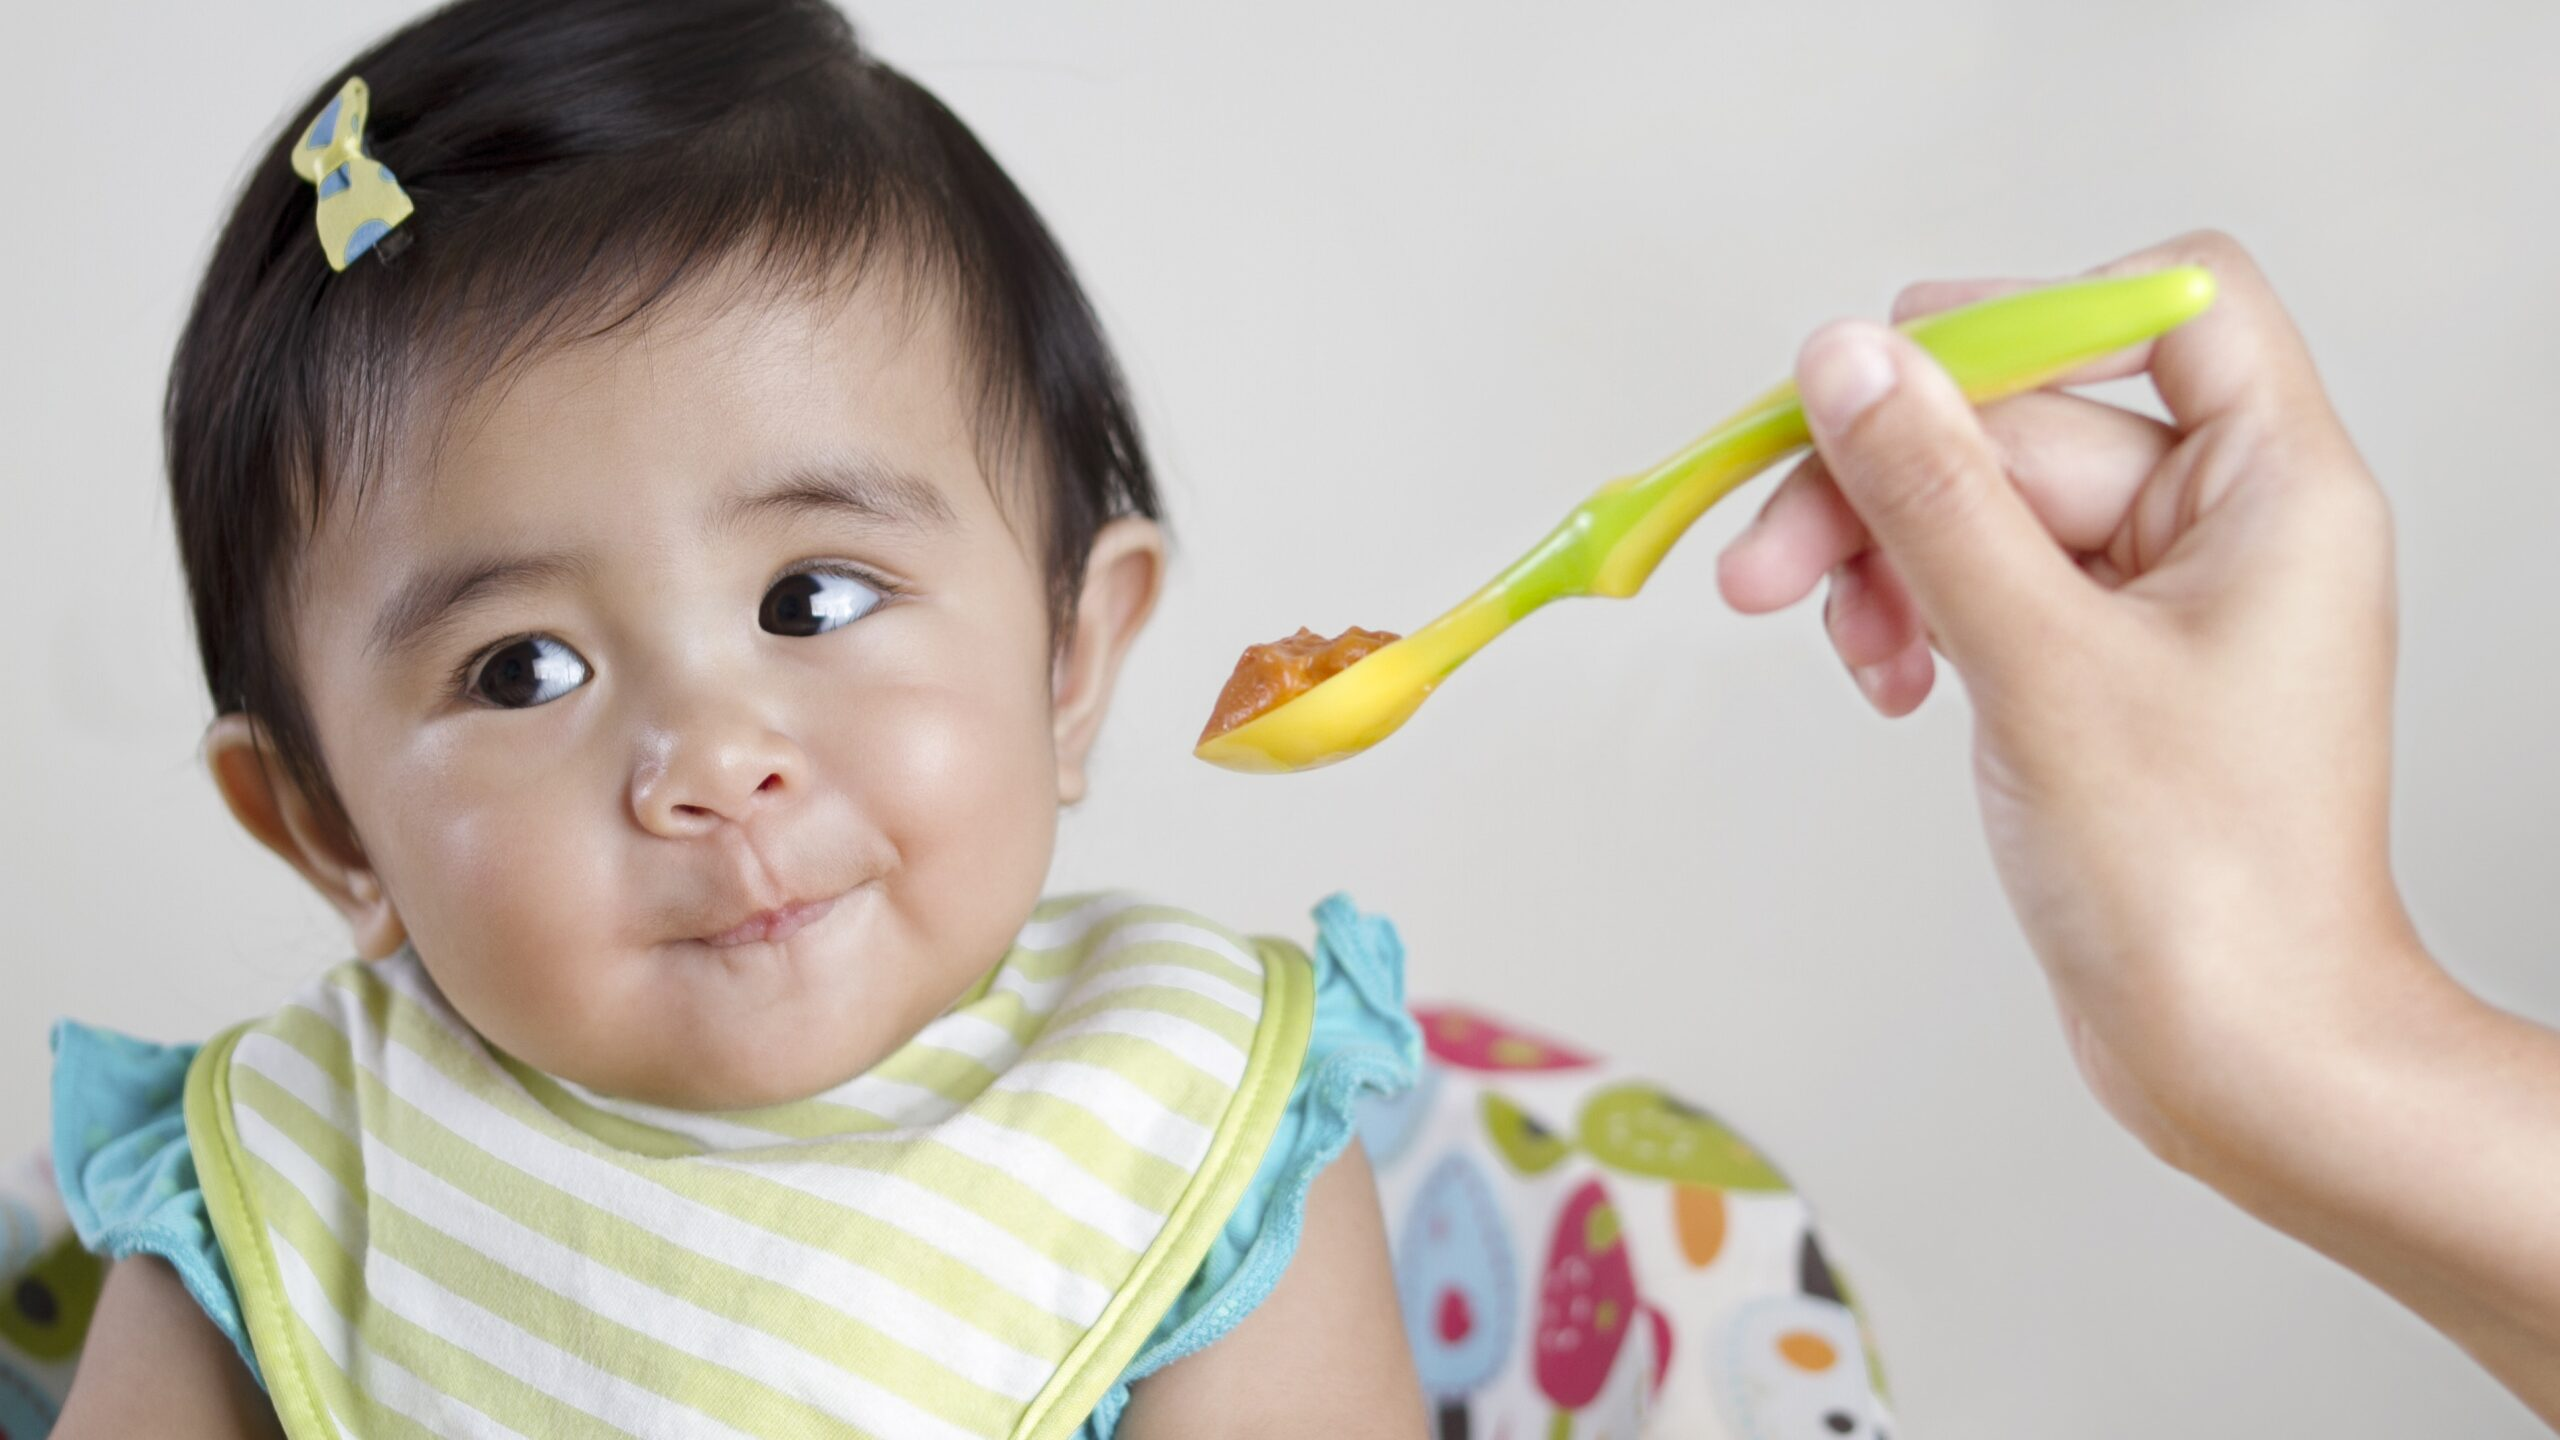 national-weaning-week-7-tips-for-moving-your-baby-onto-solid-foods-136426915738902601-180507091014